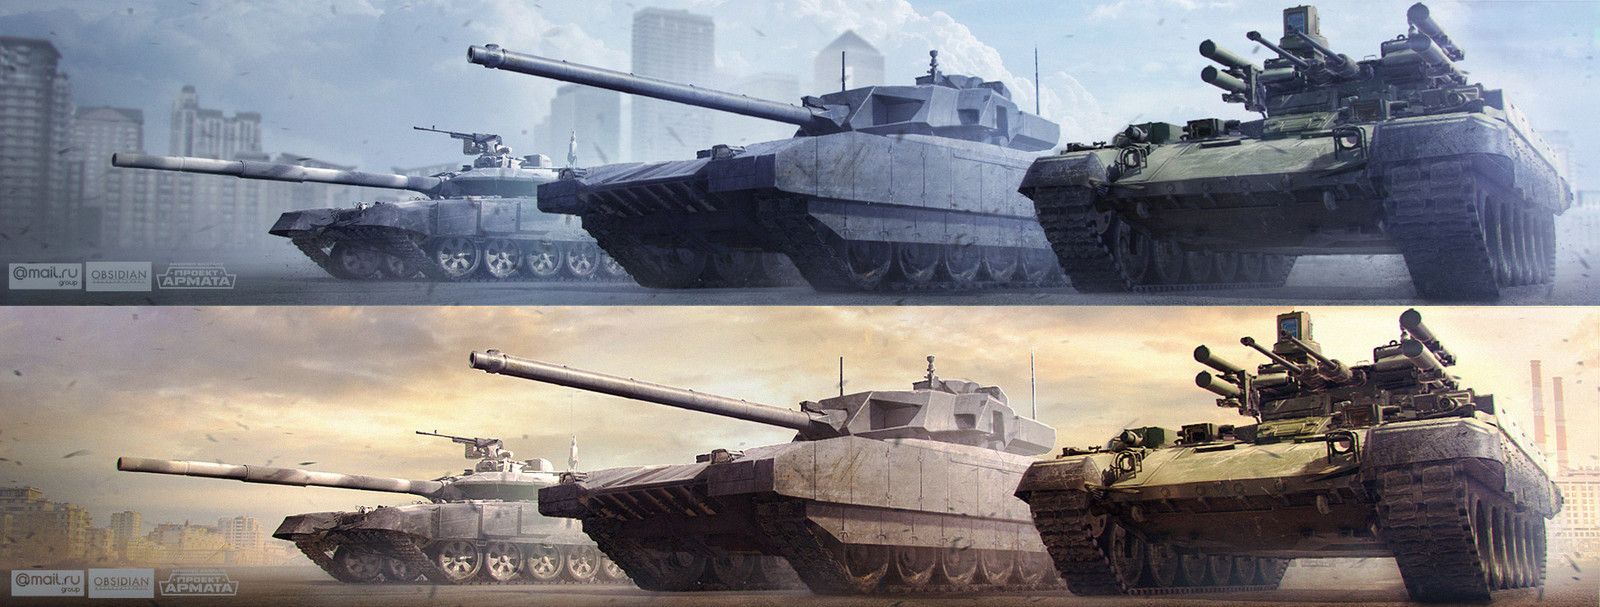 Trio of russian armored vehicles (t90, Armata, Terminator). It was done pretty quick for being alternative for some web element.